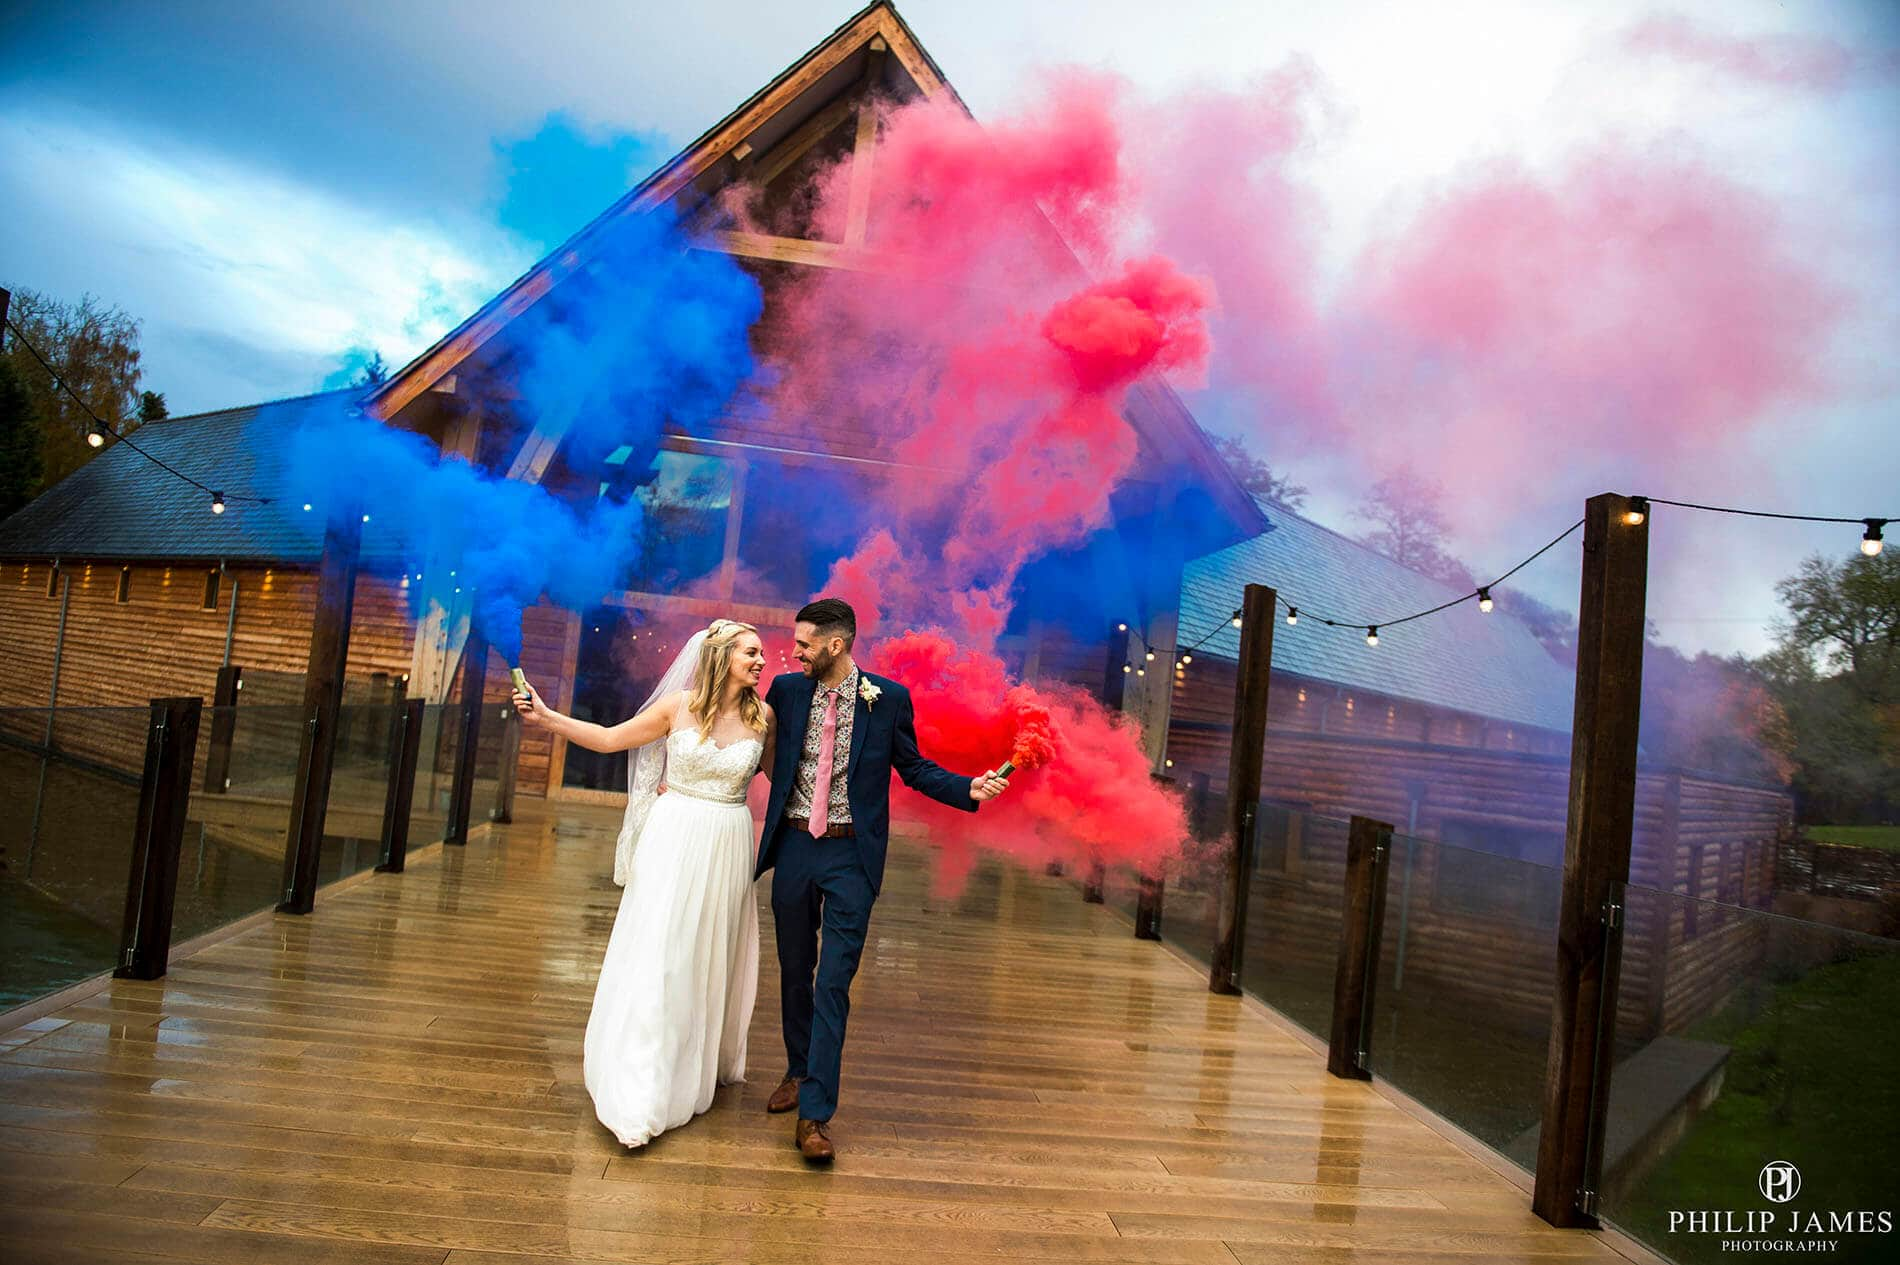 Birmingham Wedding Photographer - Philip James covers Birmingham, The West Midlands, Solihull and Destination weddings. Wedding photography Birmingham is my passion